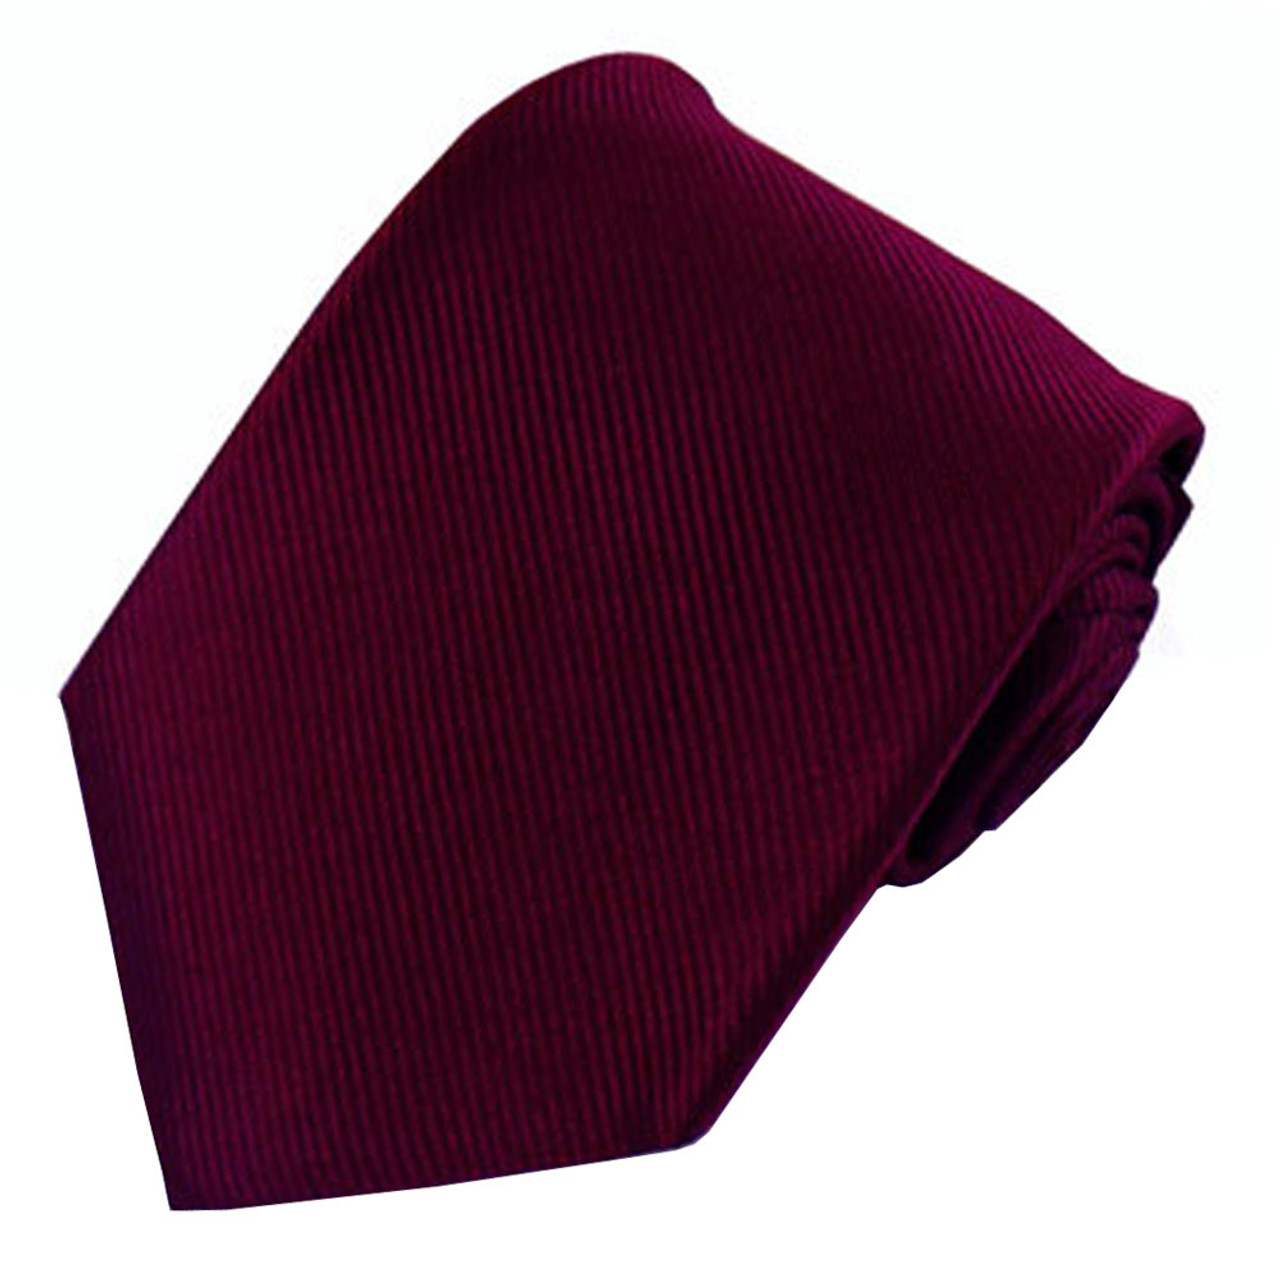 9d6b75cc1e82 Burgundy Solid Color Silk Ribbed Tie - Absolute Ties